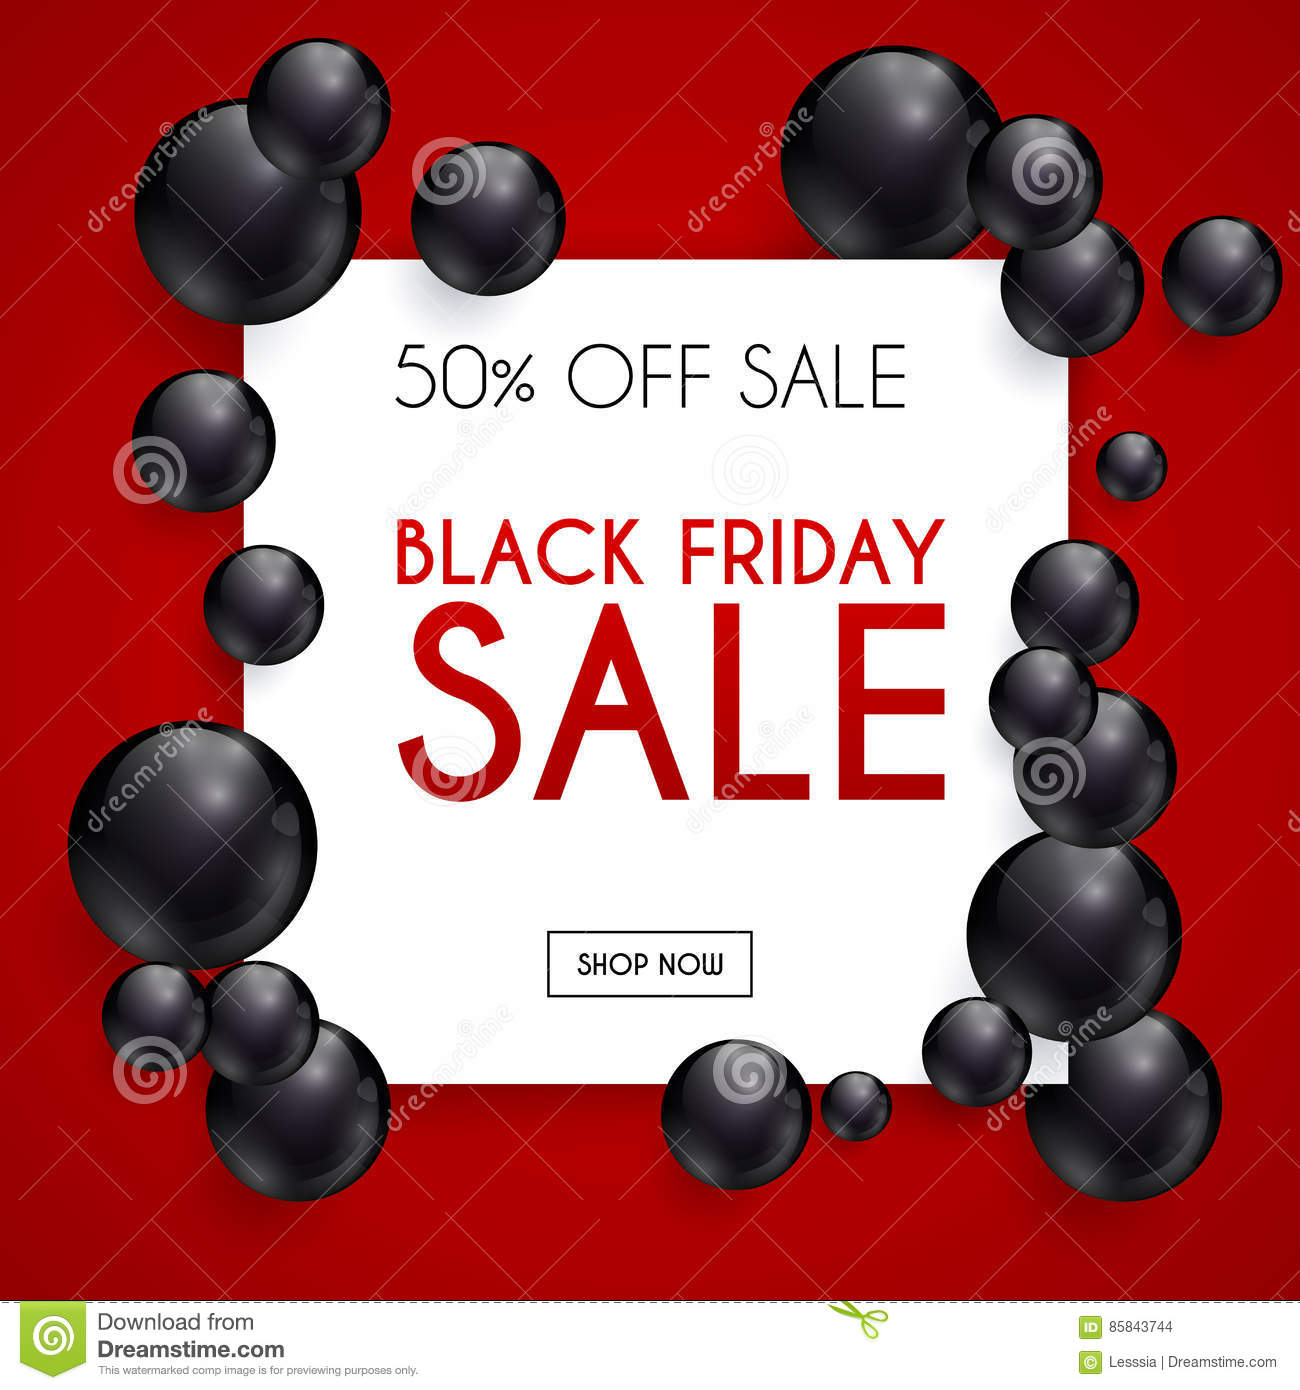 dcec71a45795 Black Friday. Sale. Can be used for website and mobile website banners